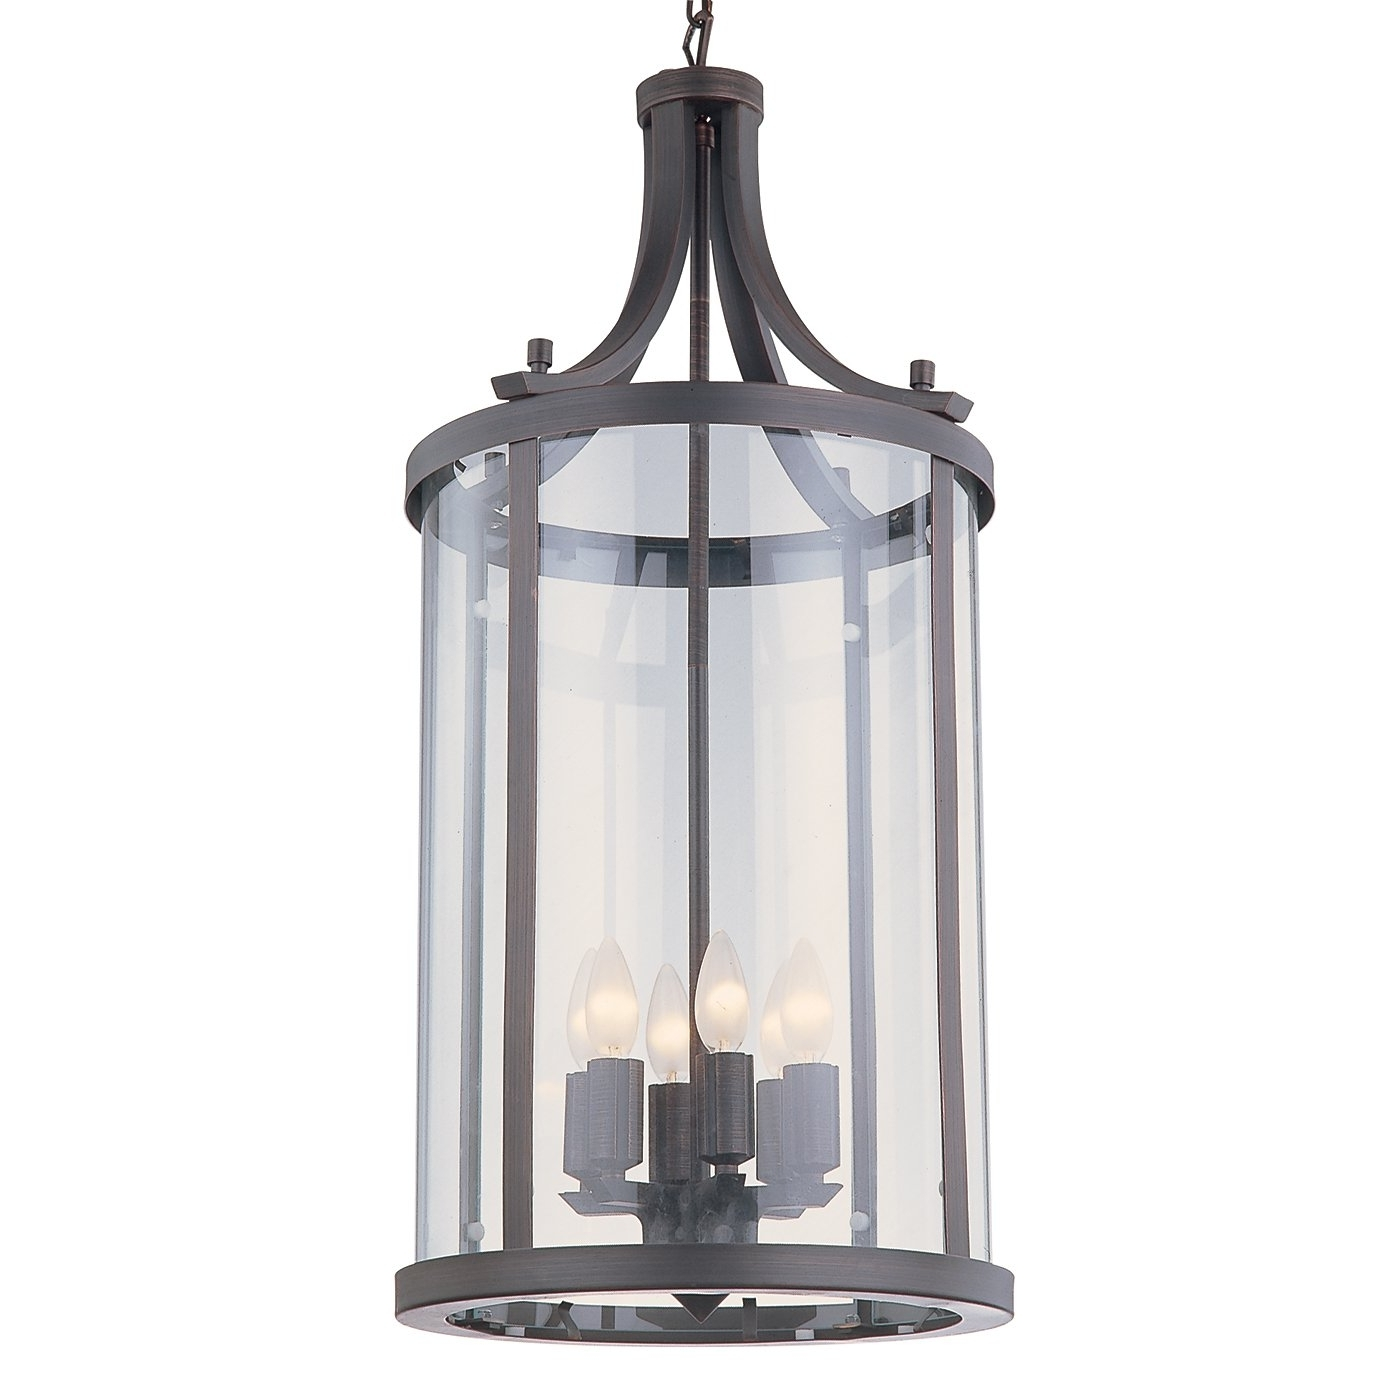 Preferred Foyer Lighting Lowes – Trgn #919752Bf2521 With Regard To Outdoor Entrance Ceiling Lights (View 3 of 20)